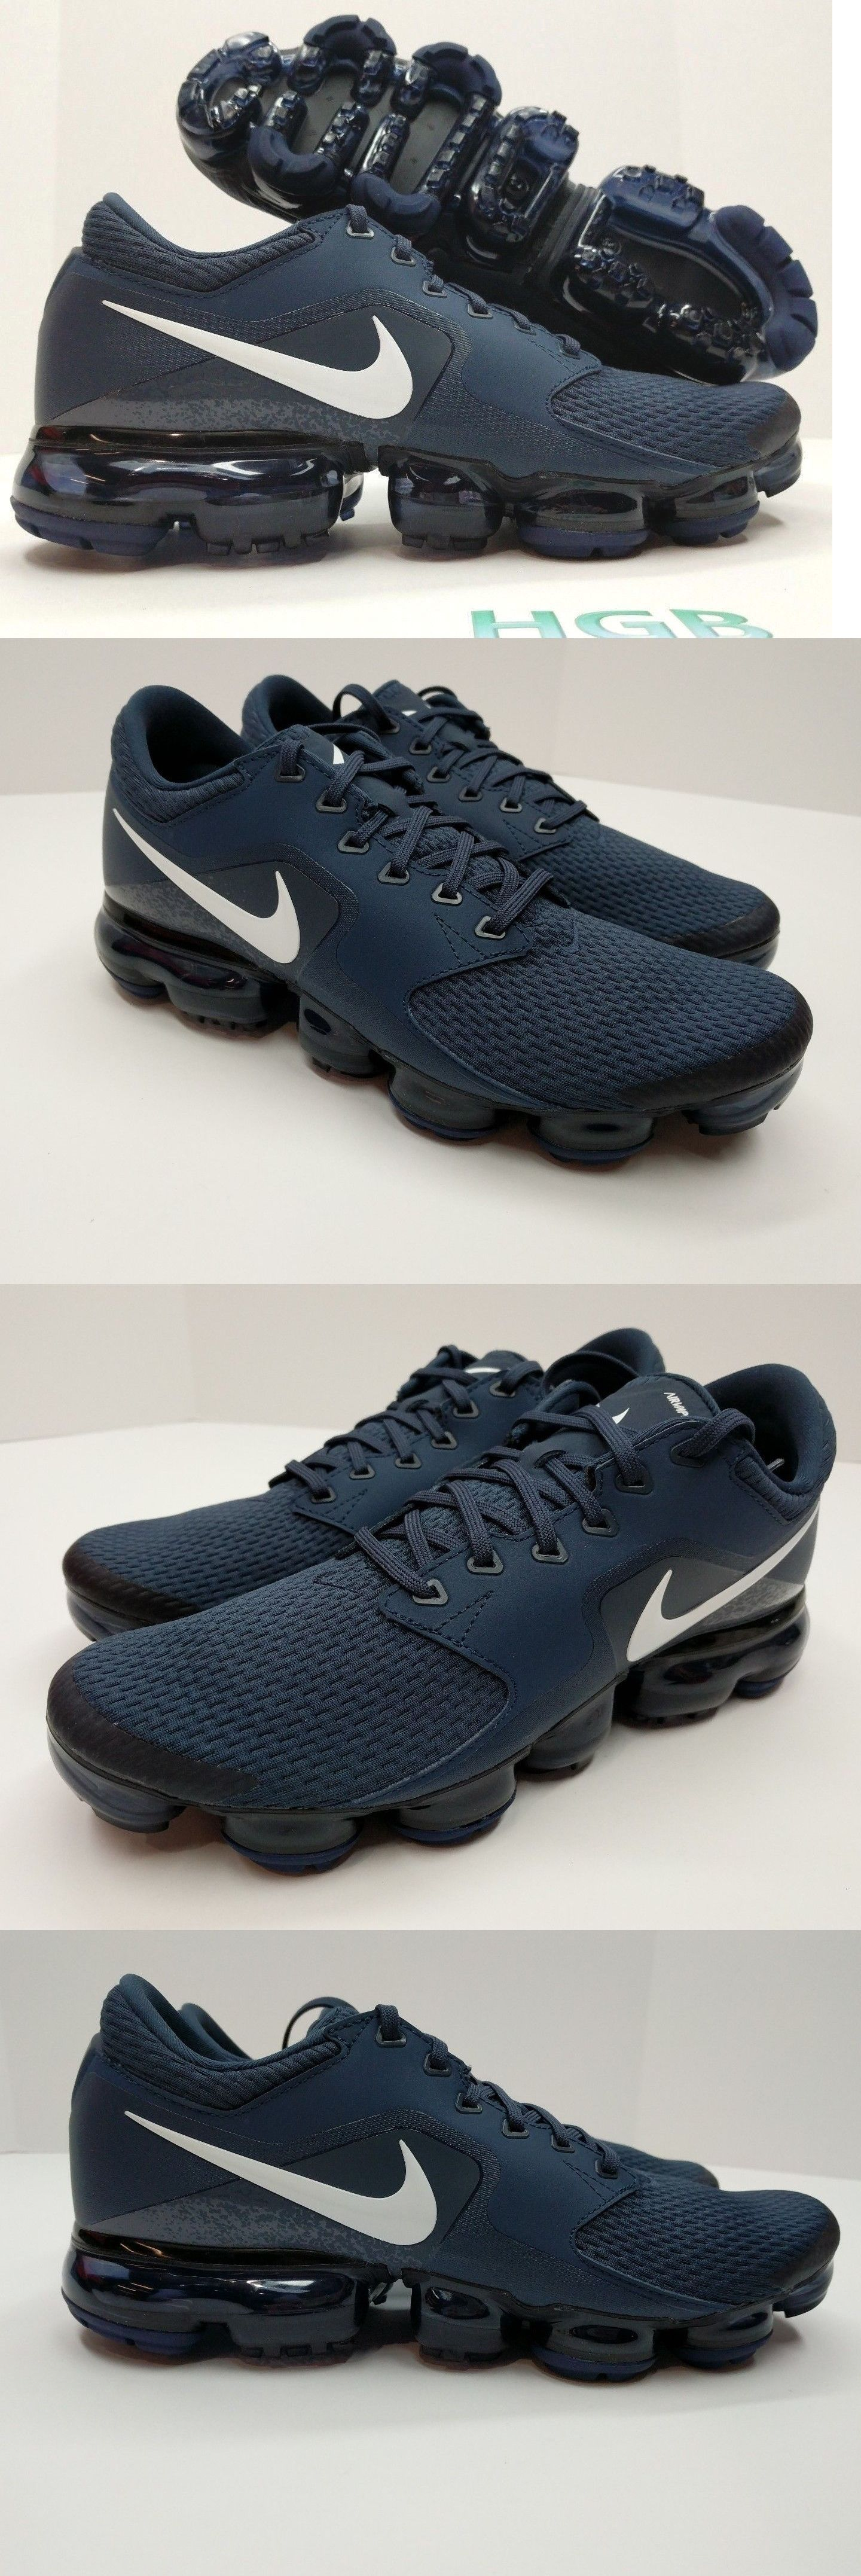 san francisco 8325a d9be3 Athletic 15709: Nike Air Vapormax Cs Mens Blue White Navy Running Ah9046 401  Multiple Size Nib -> BUY IT NOW ONLY: $166.2 on eBay!